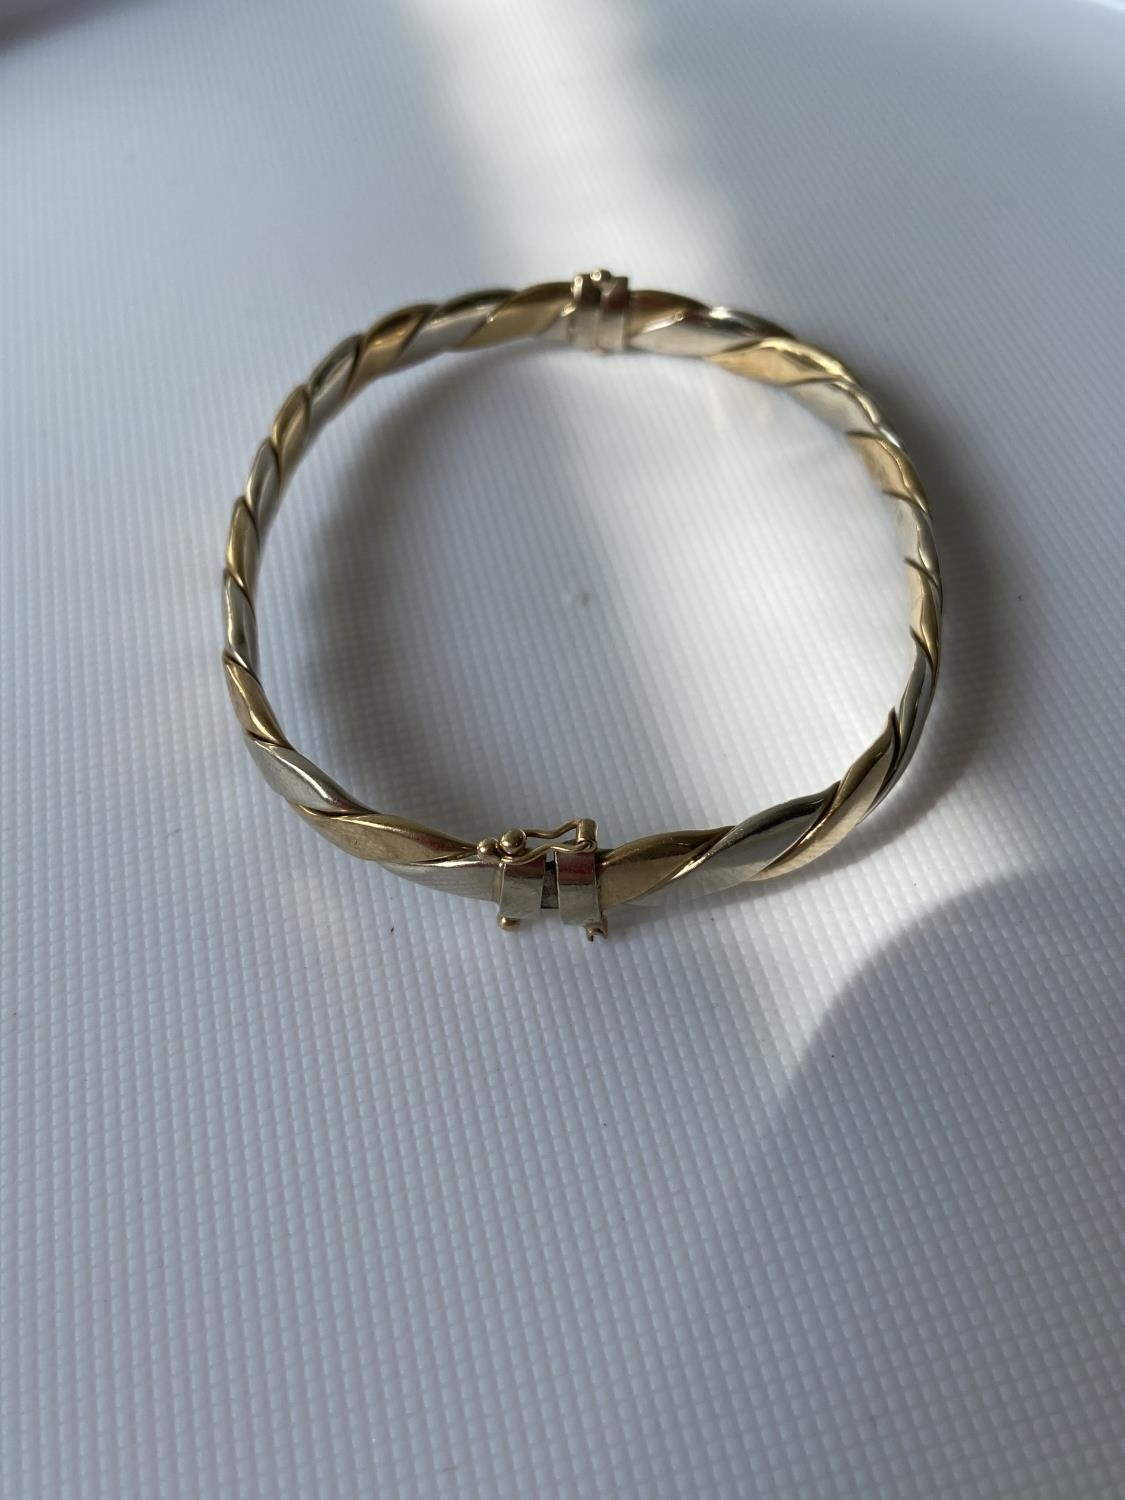 A London export 9ct gold two tone bangle (missing clasp) [5x5cm] [10-25g] - Image 3 of 4